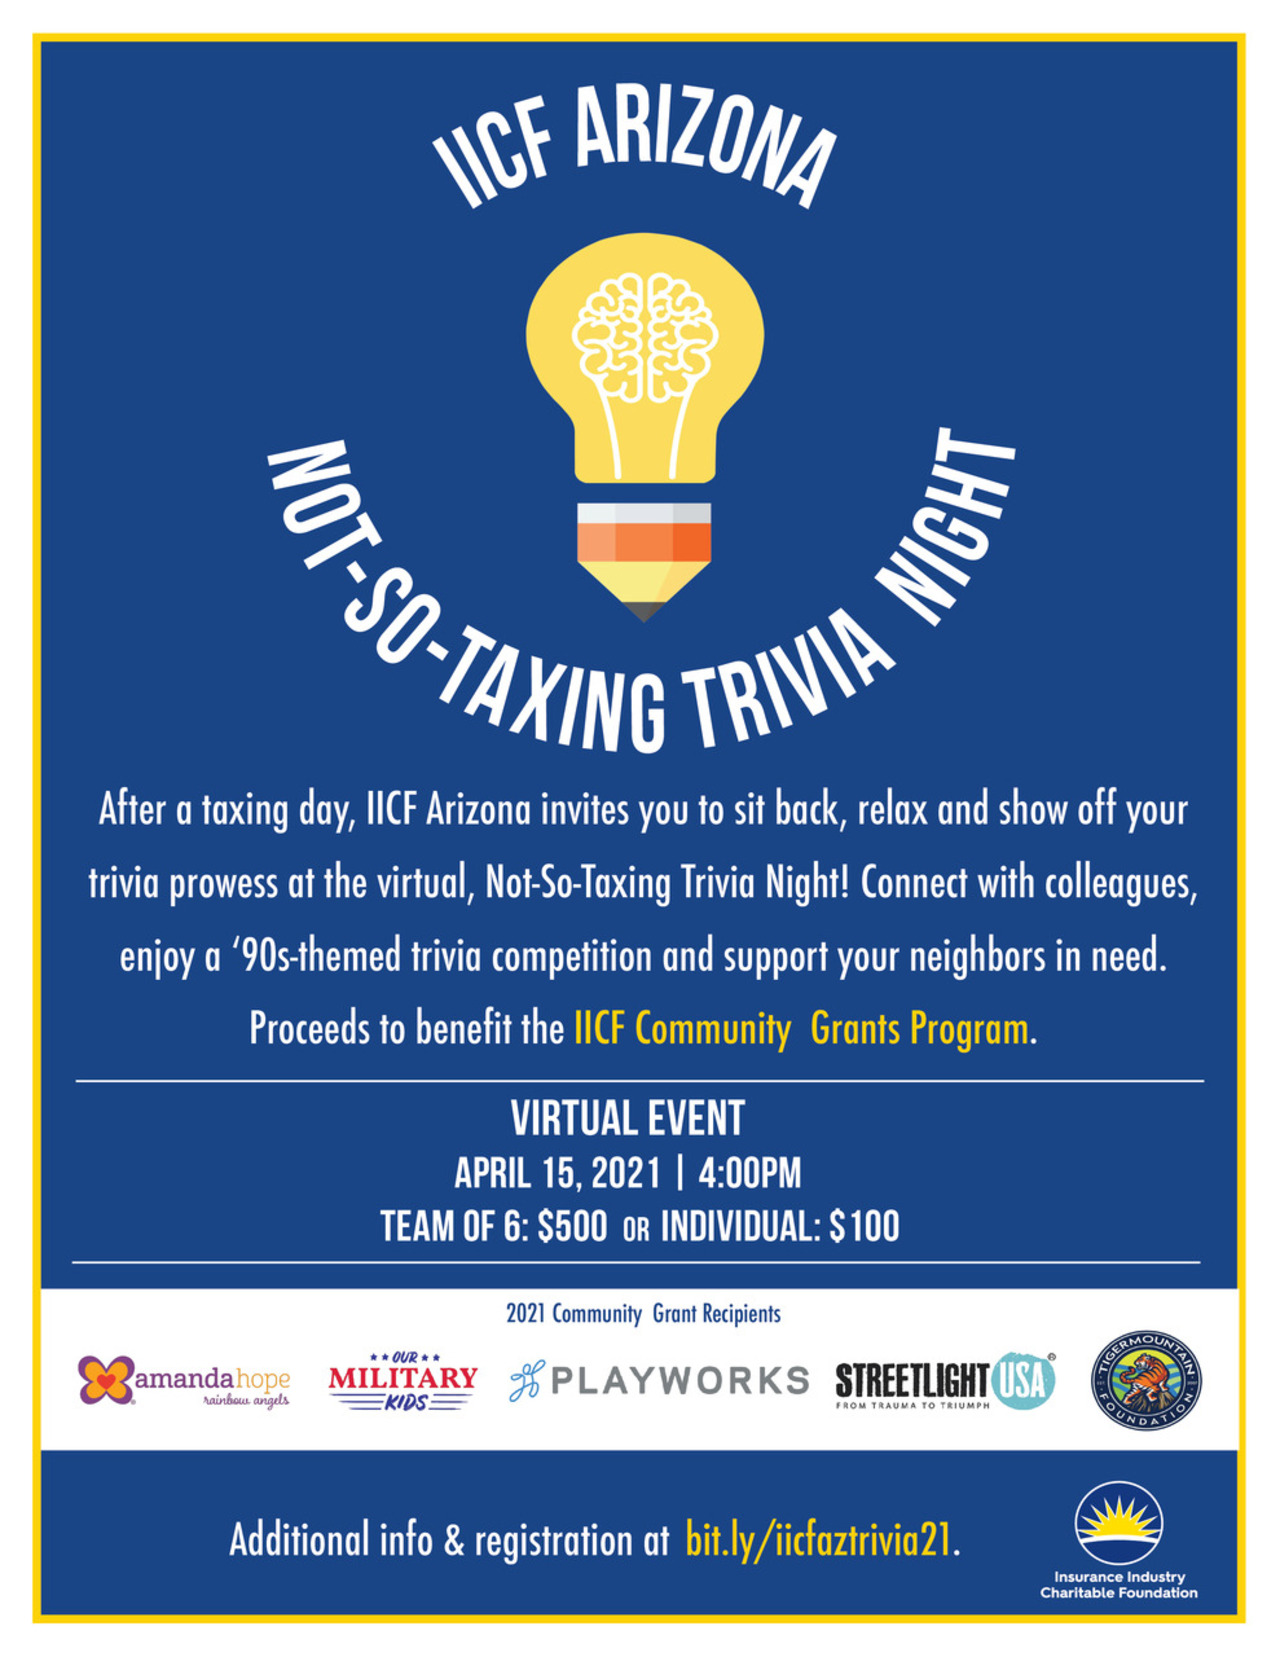 IICF Arizona Not-So-Taxing Trivia Night 2021